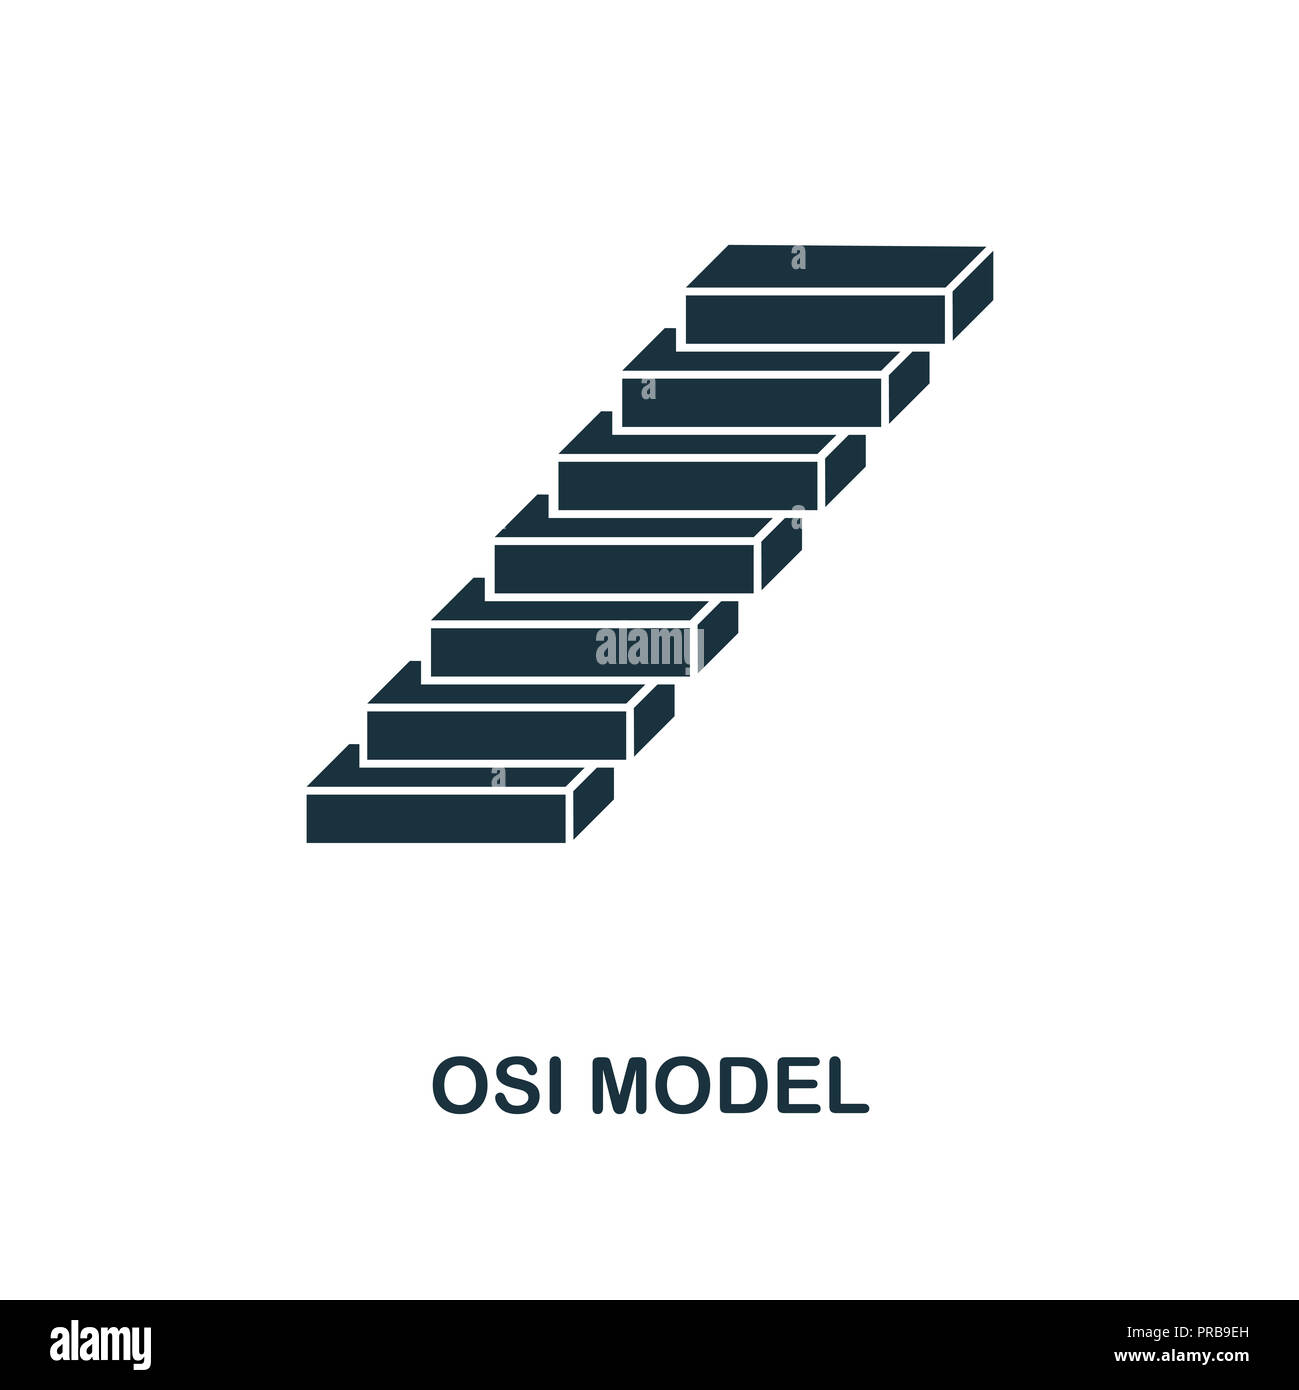 Osi Model icon. Simple style design from industry 4.0 collection. UX and UI. Pixel perfect premium osi model icon. For web design, apps and printing u - Stock Image